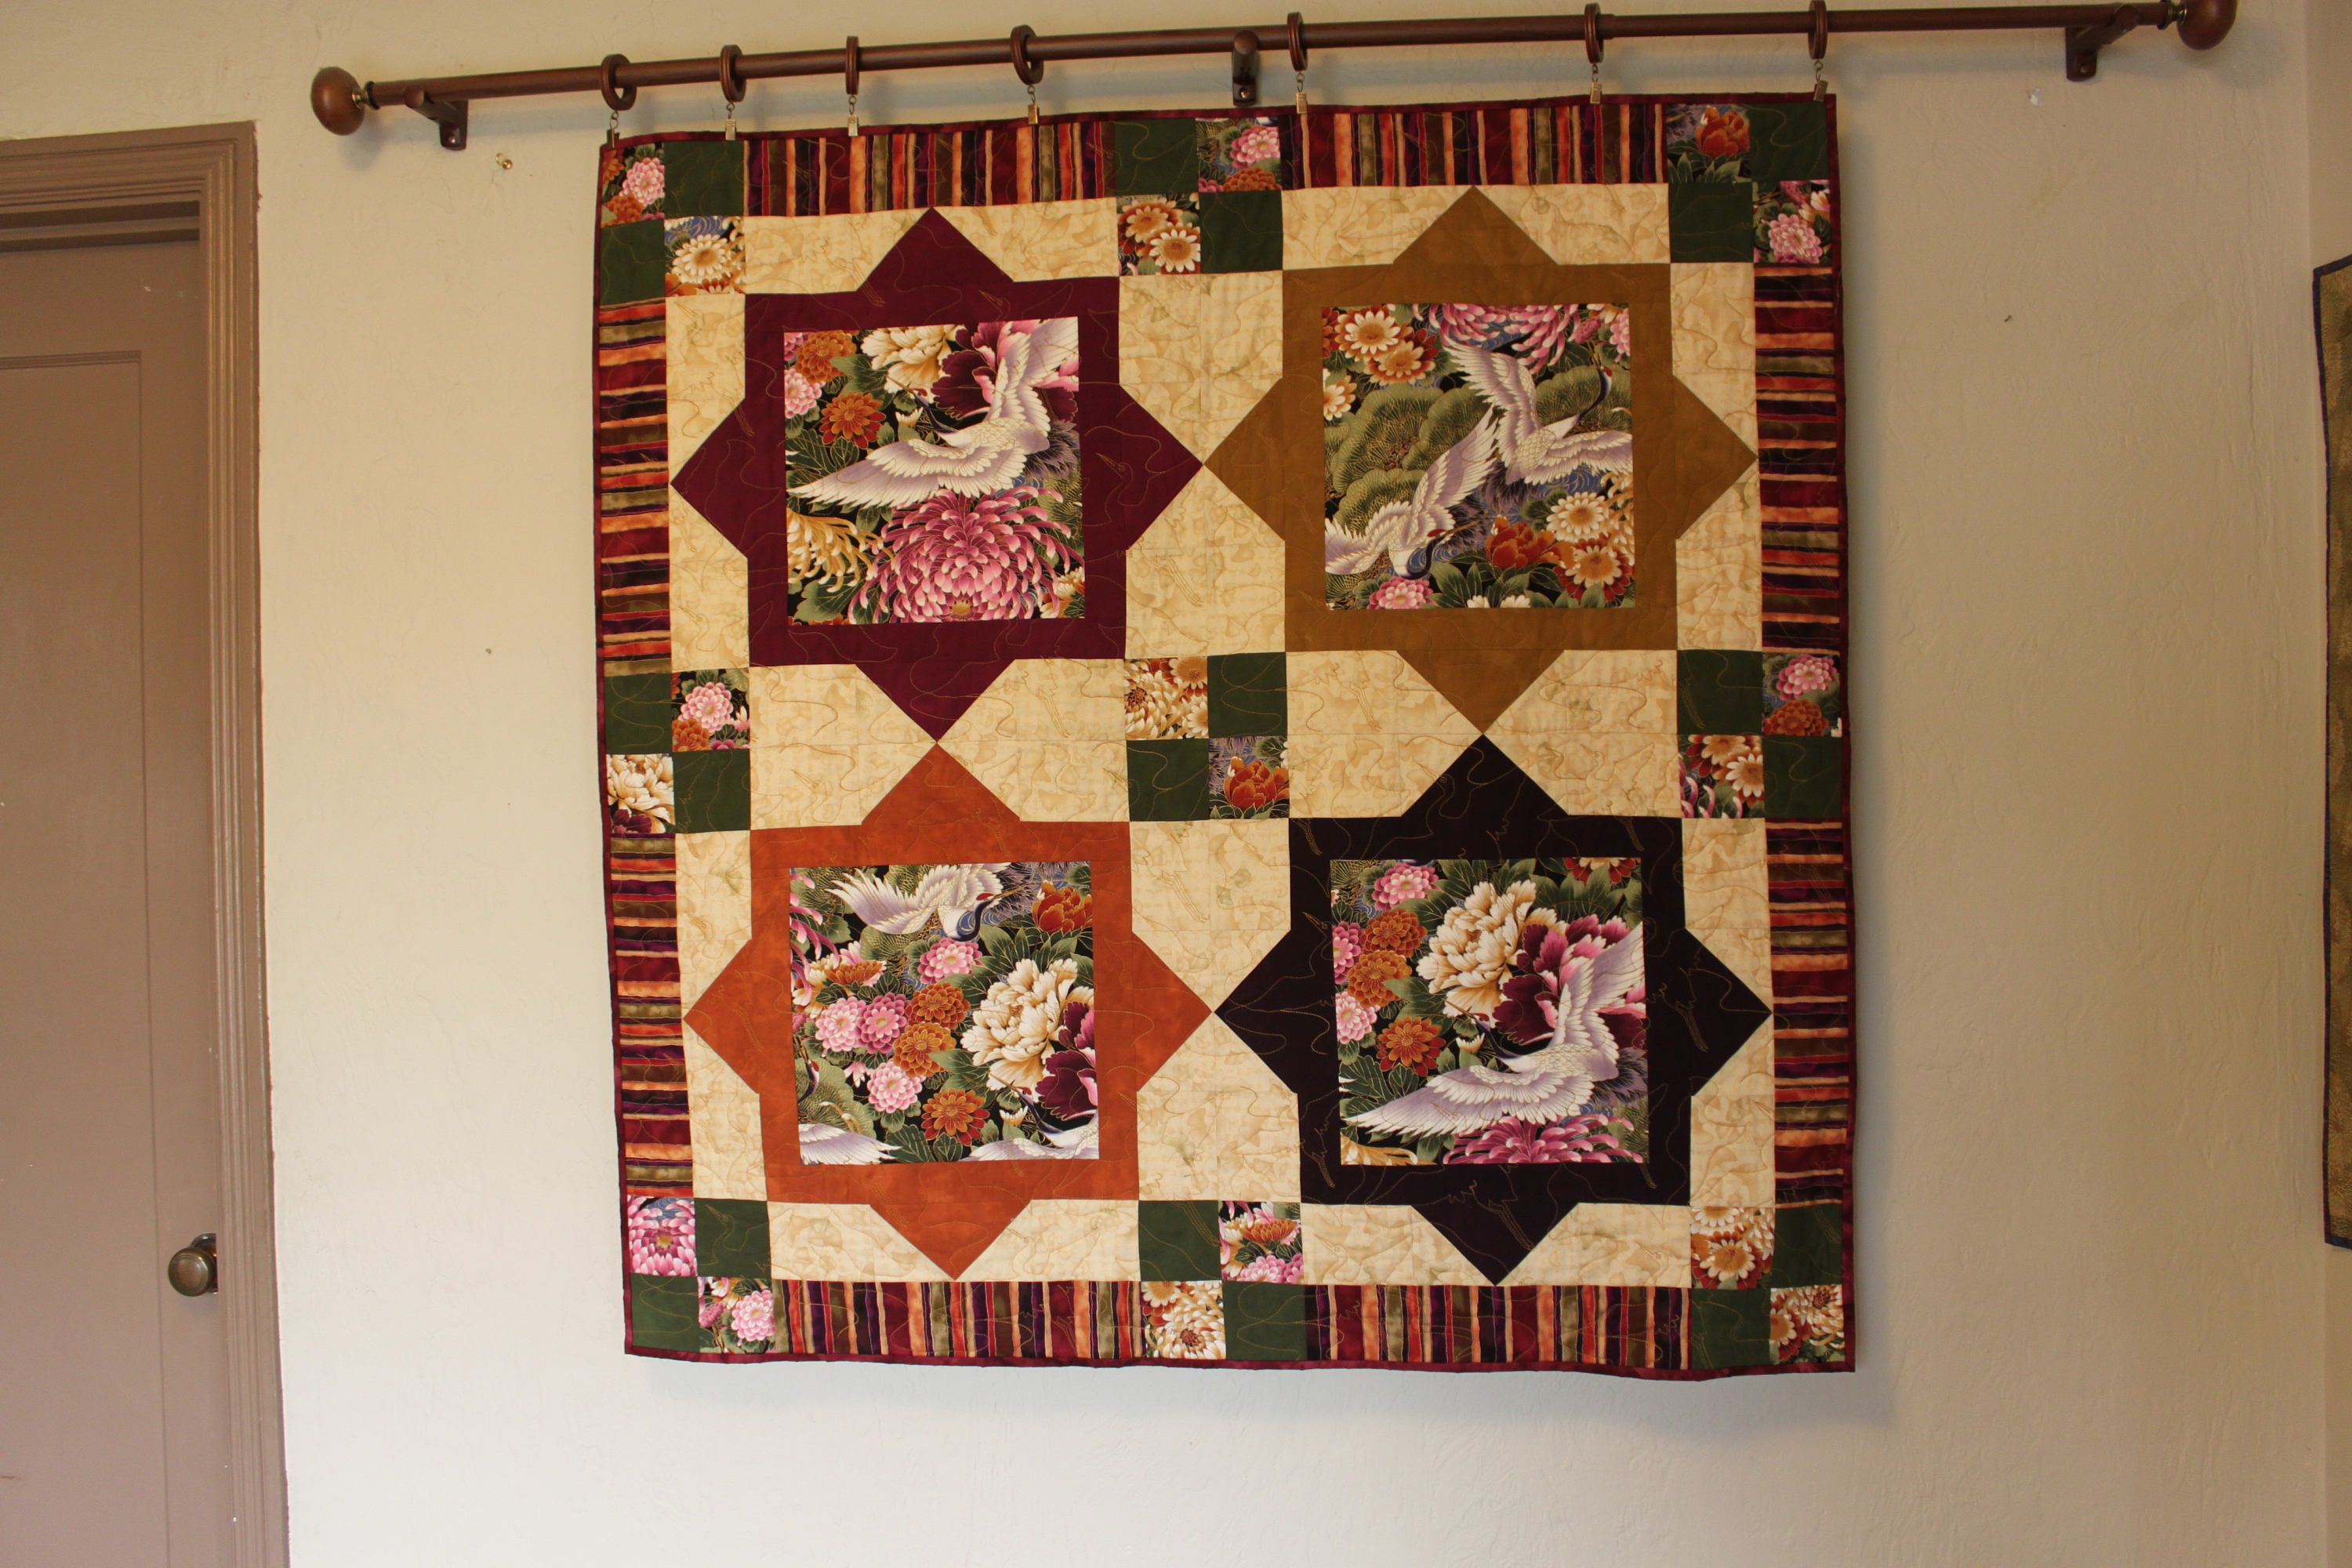 Asian Cranes Quilt / Wall Hanging, Quilts for Sale, Handmade Quilt ... : handmade quilts for sale etsy - Adamdwight.com